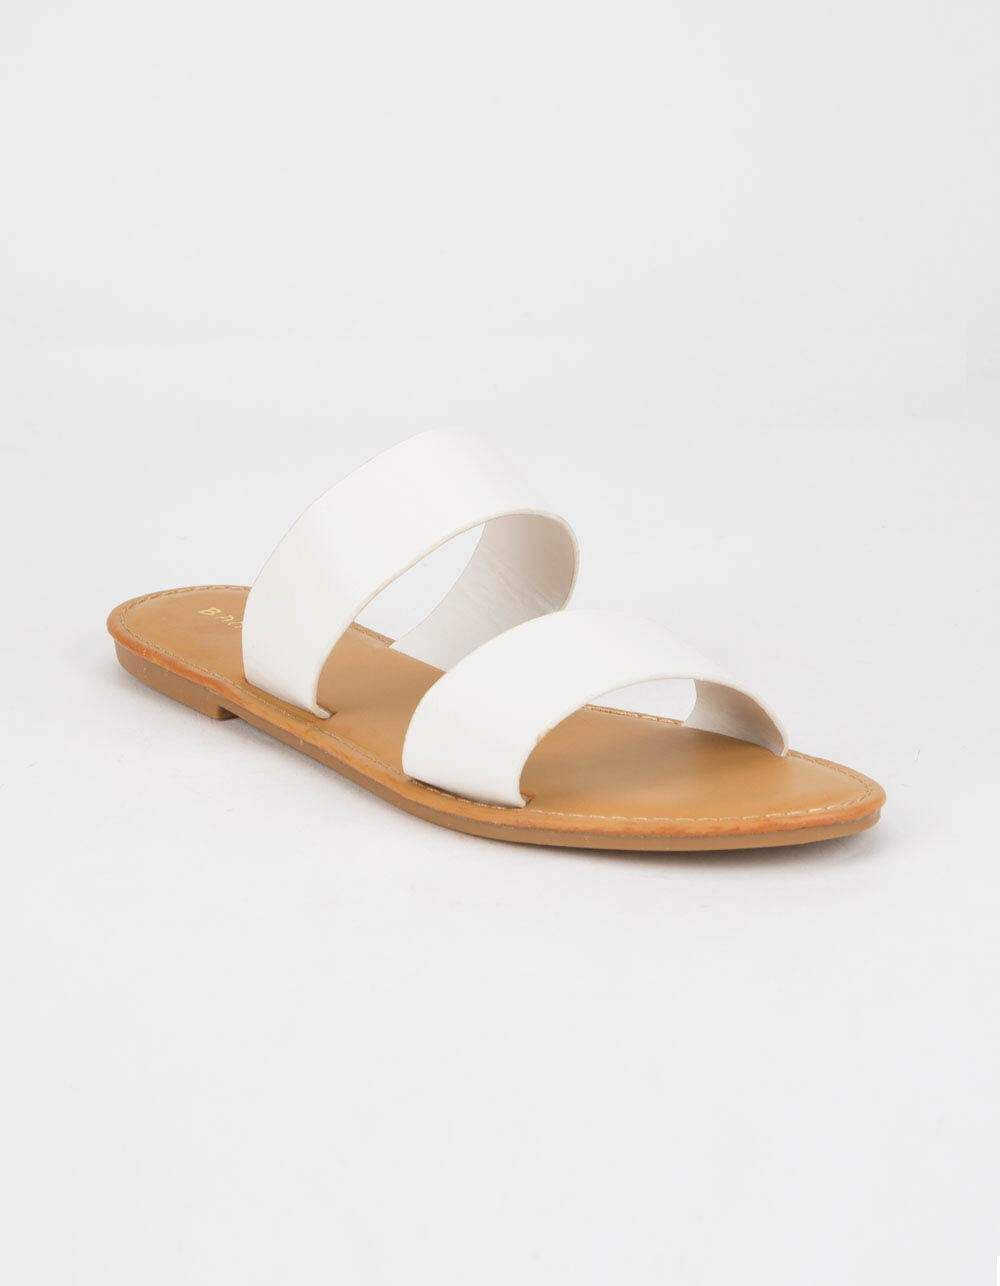 womens sandals, White strappy sandals